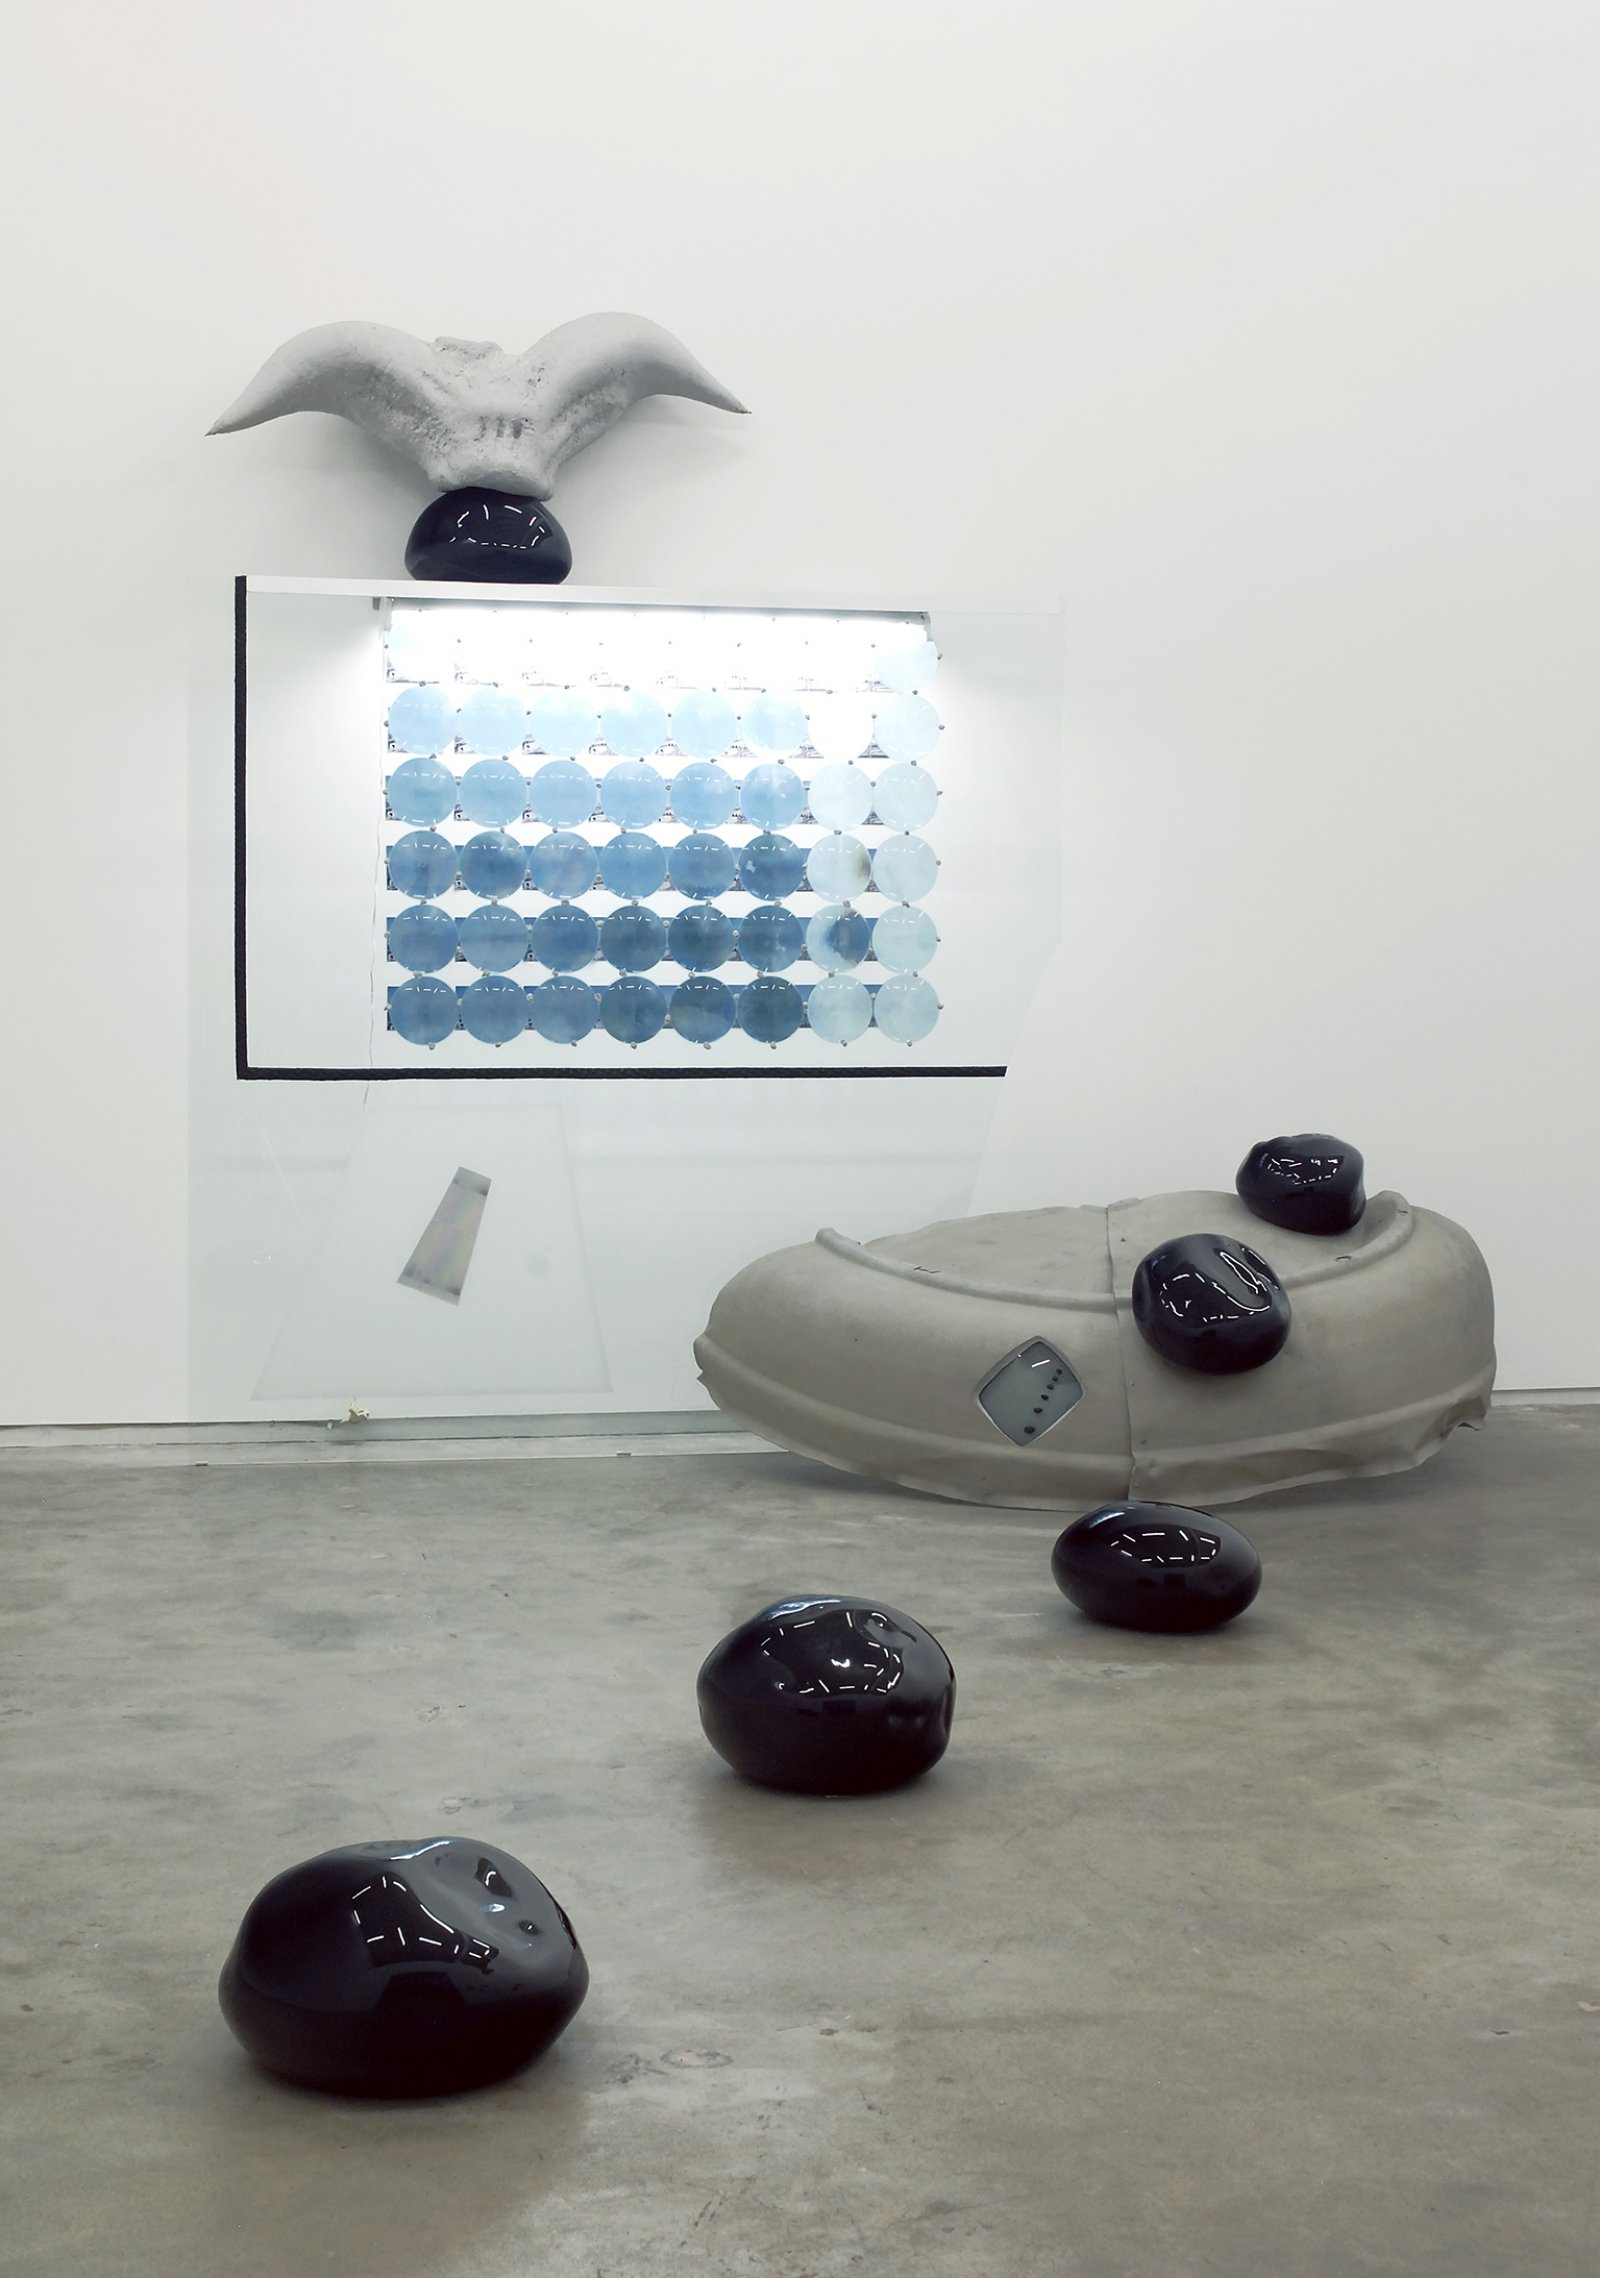 Jerry Pethick, Roof to Heaven Too, 1986–1988, blown glass, glass, rubber tire, TV tube, stones, aluminum, spectrafoil, 48 instamatic prints, 48 blue fresnel lenses, styrofoam, silicone, fluorescent light fixture, 169 x 111 x 75 in. (429 x 282 x 191 cm) by Jerry Pethick